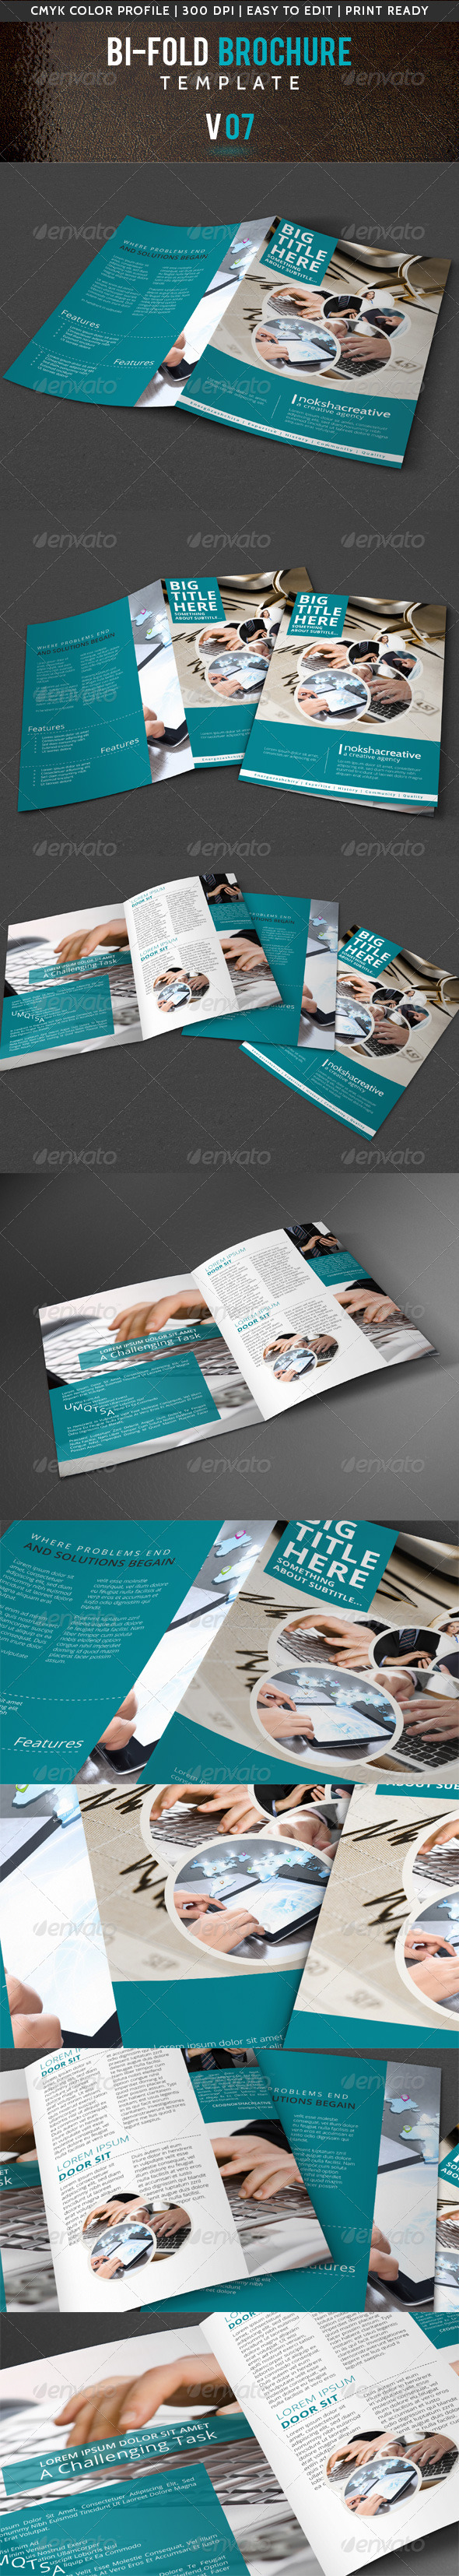 GraphicRiver Corporate Bi-Fold Brochure V-07 5482798